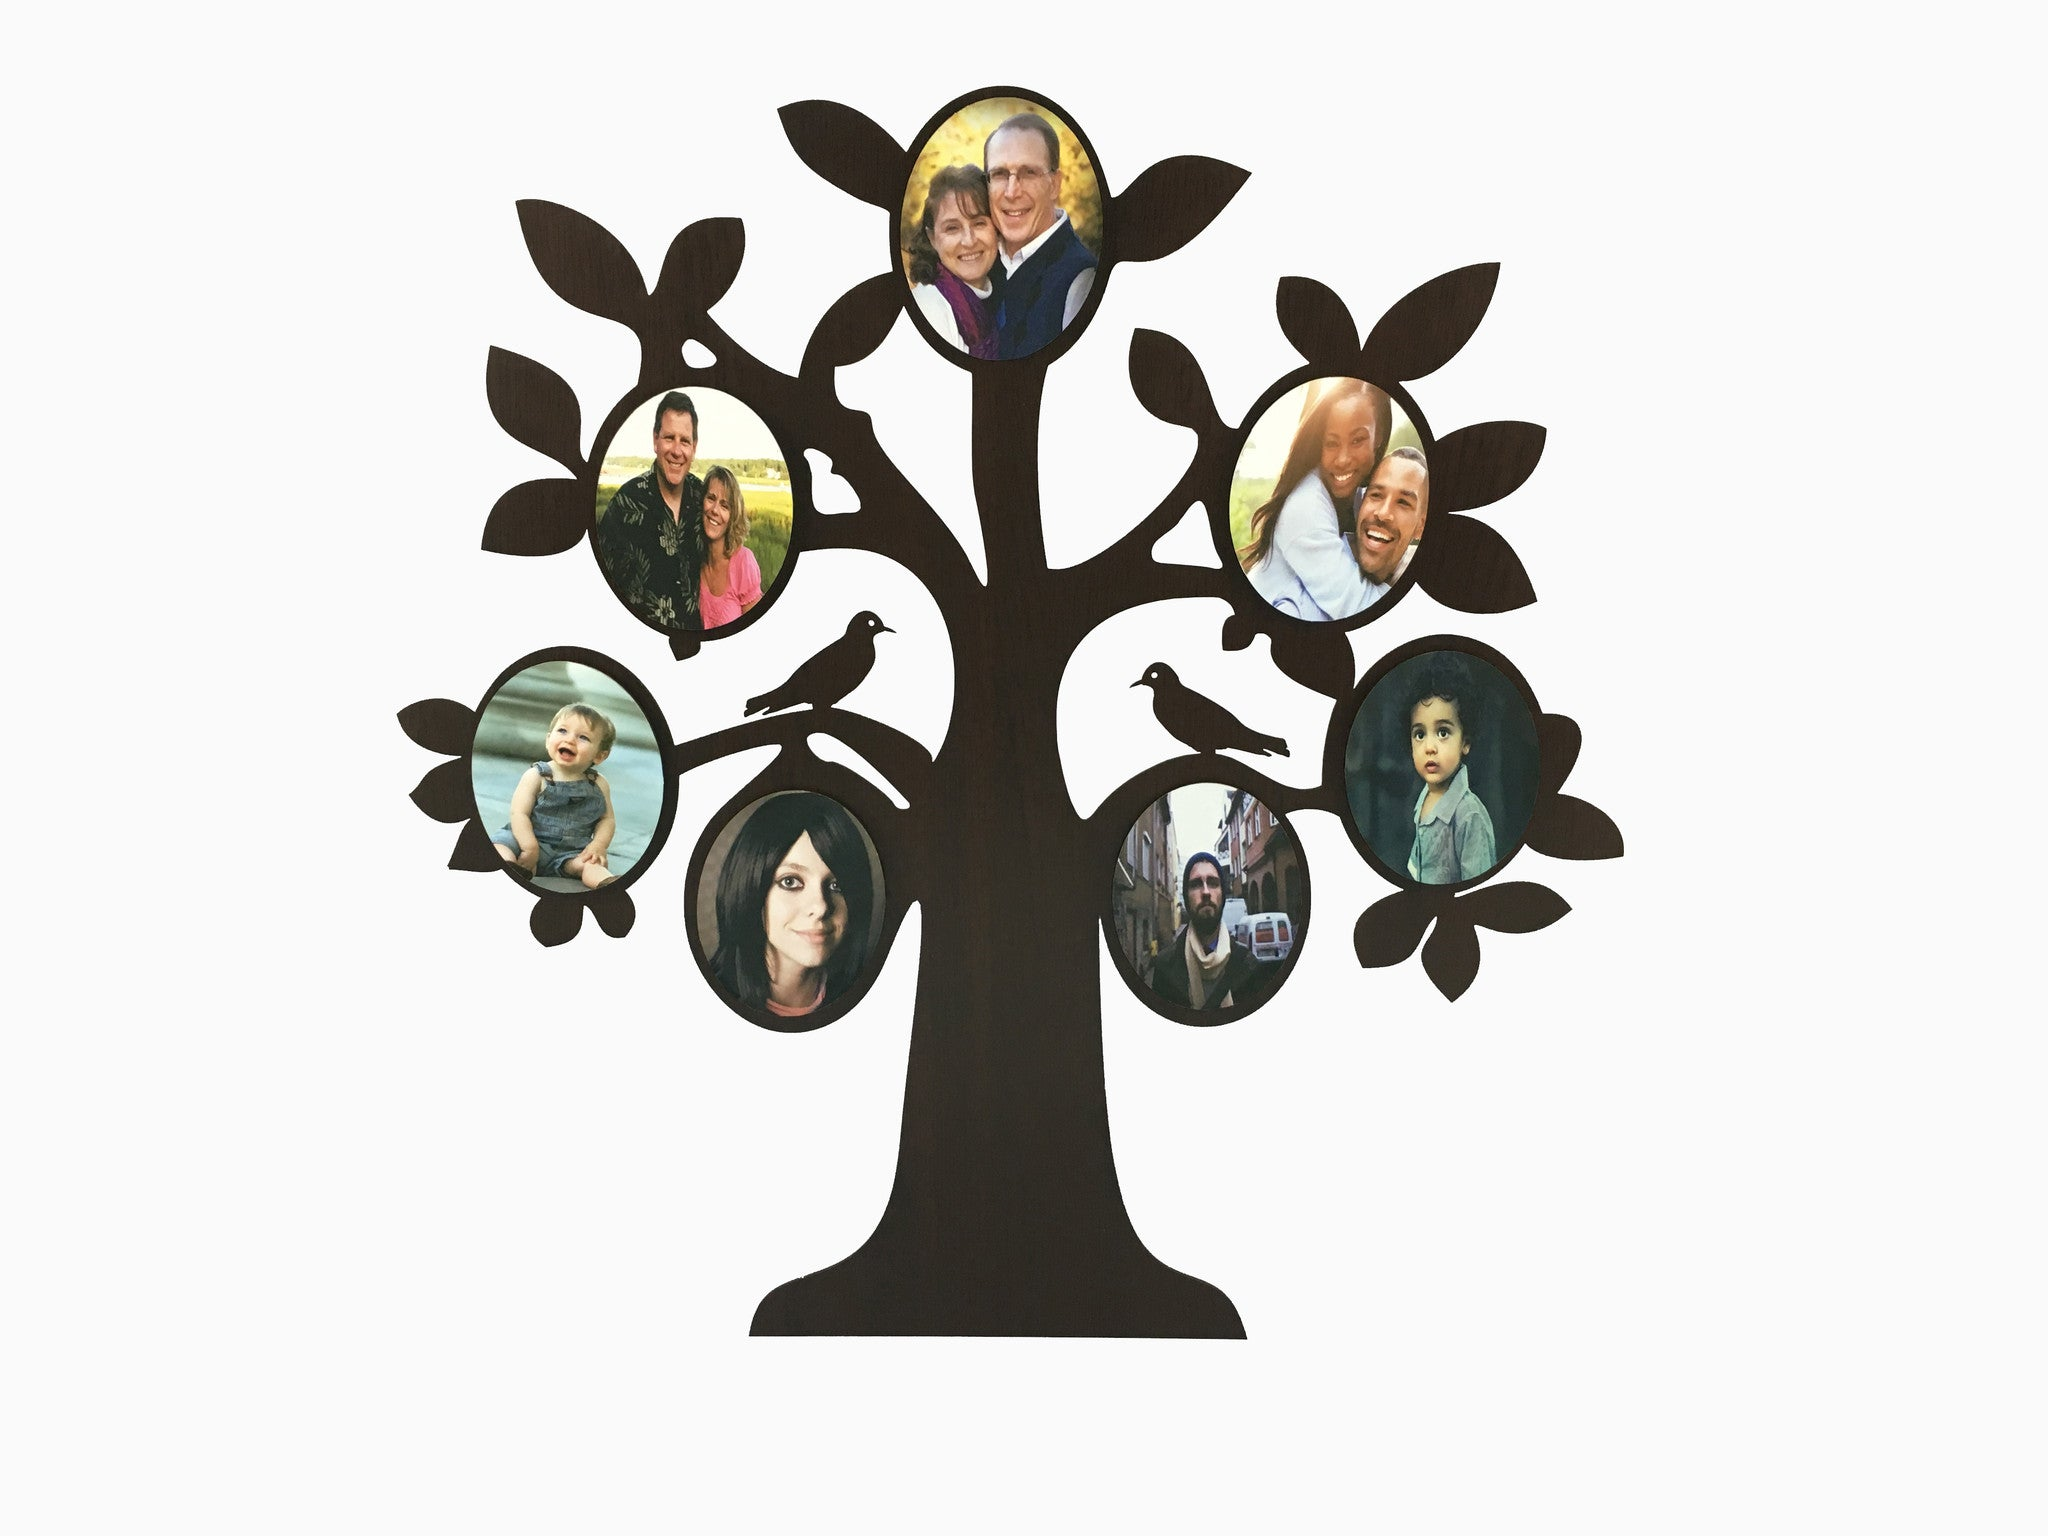 Wooden Wall Hanging Frame  Family Tree (7 Photos)   Photo Frame   Wisholize